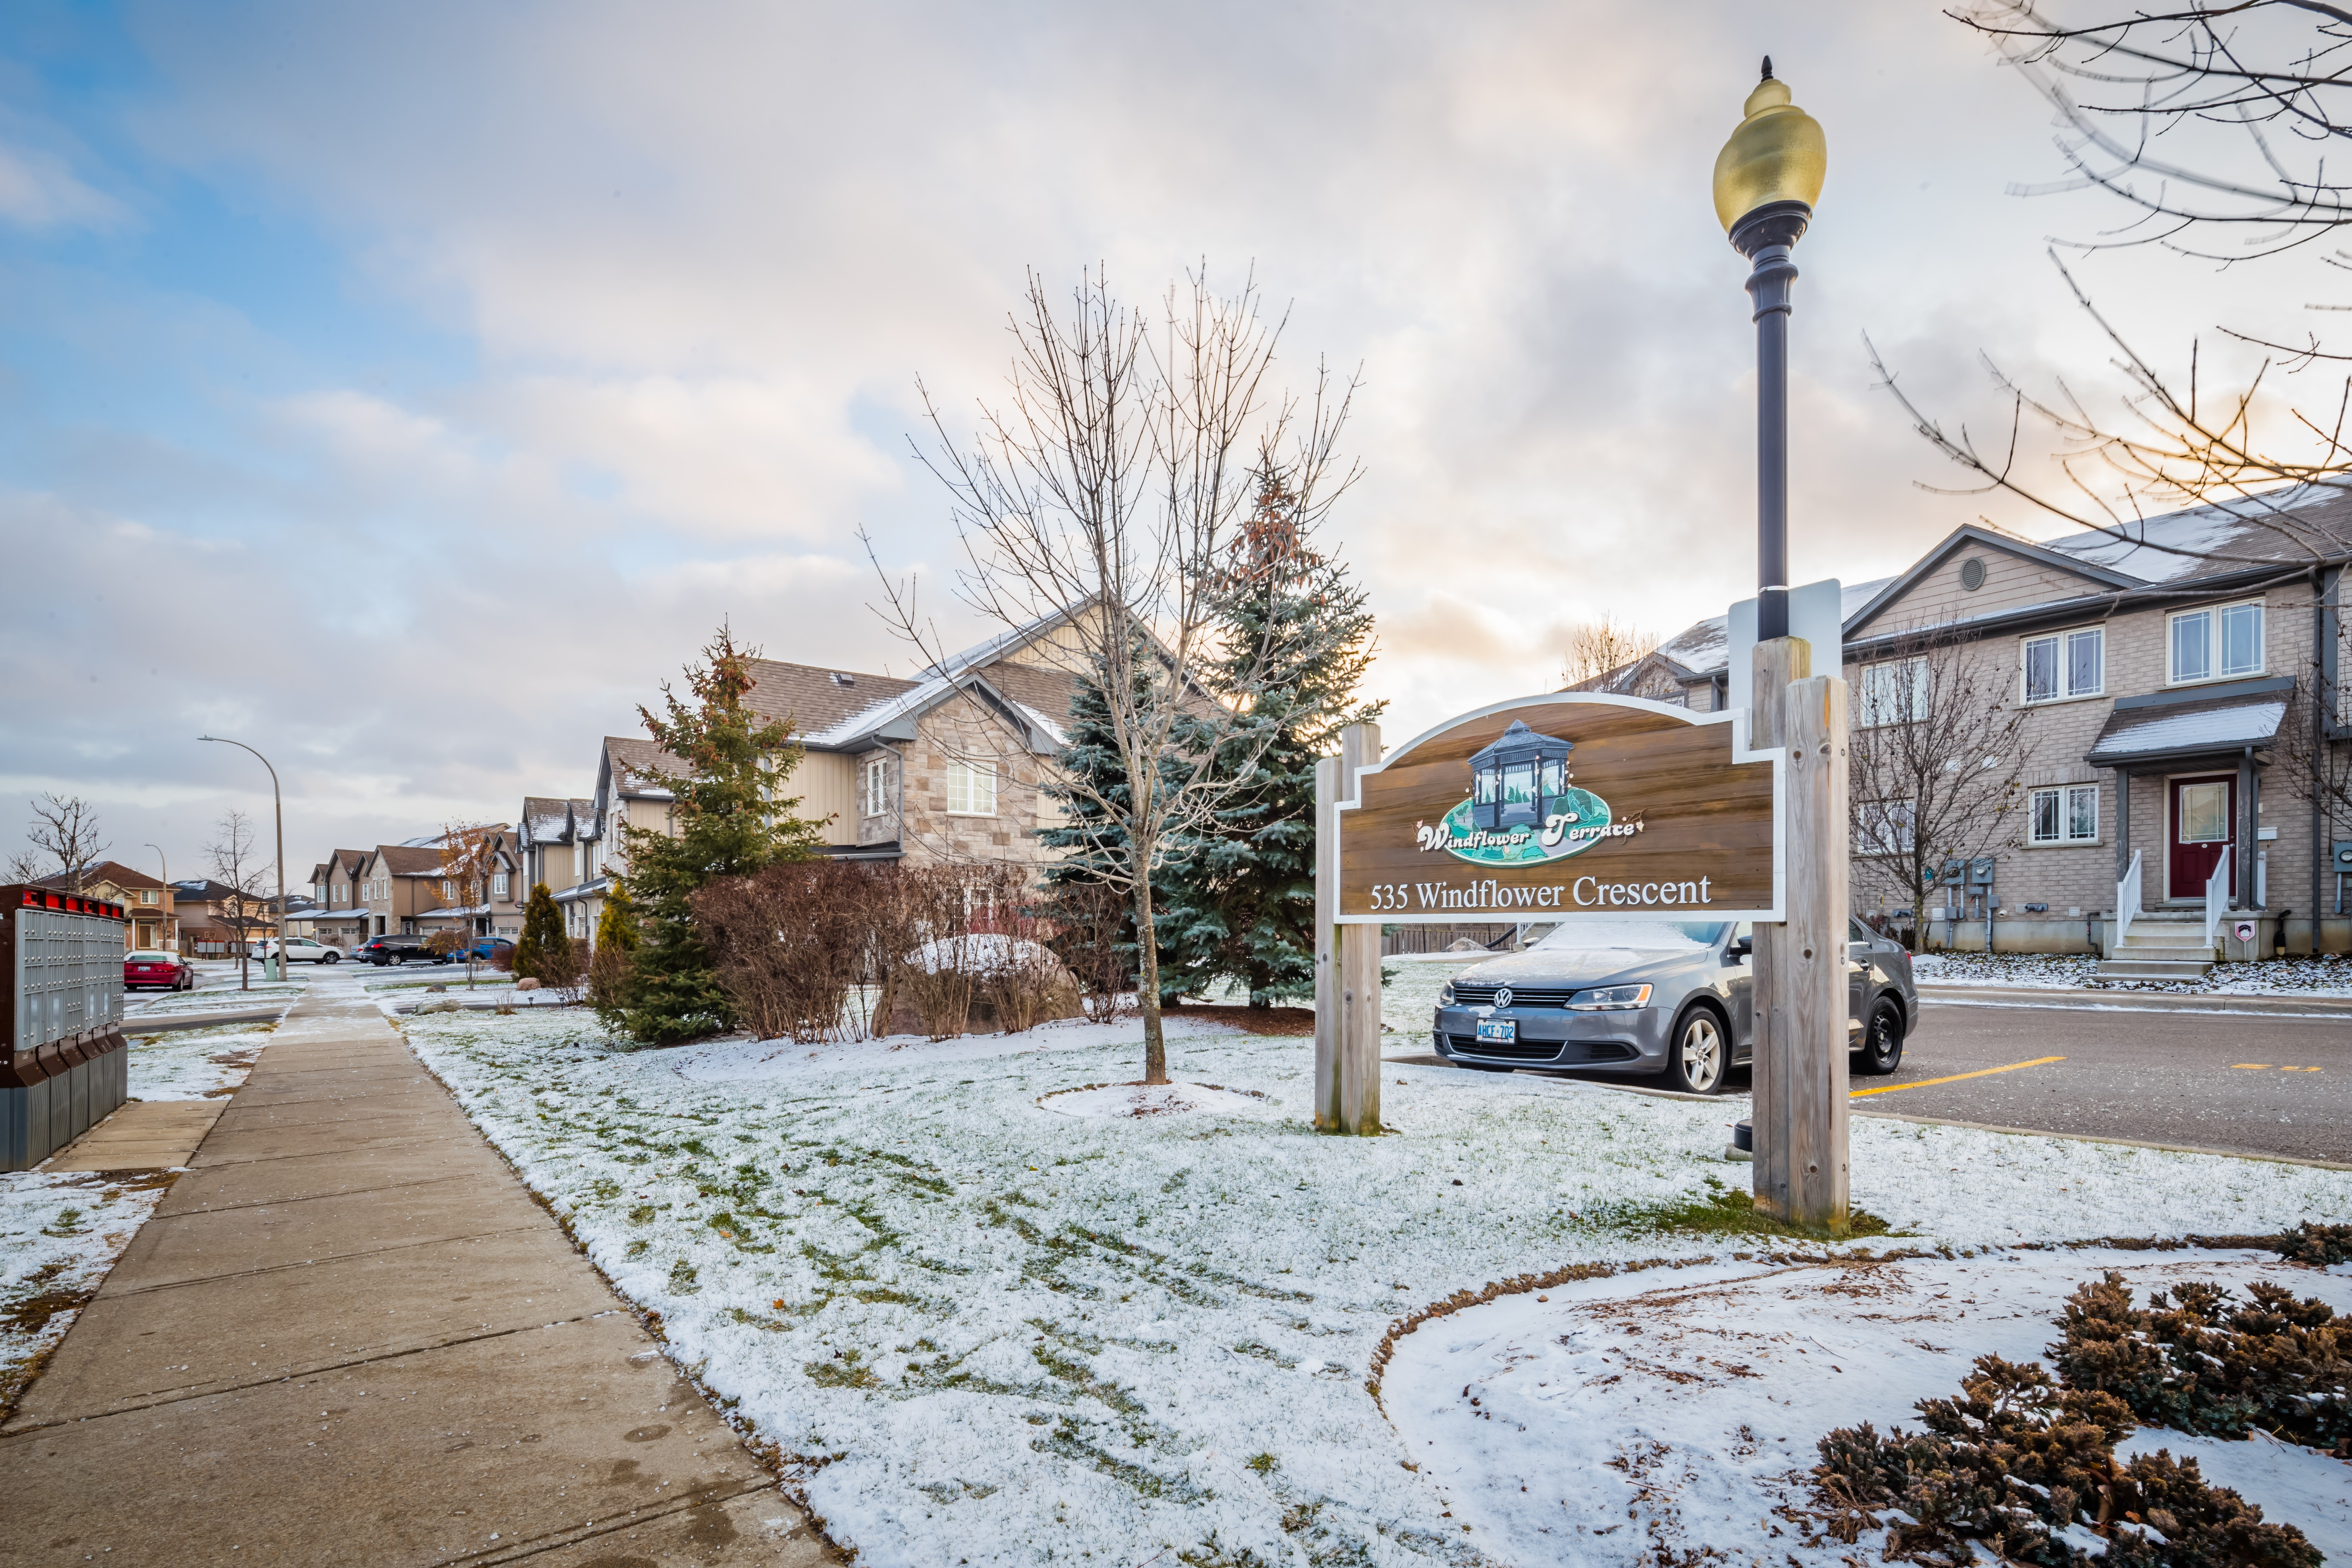 Windflower Terrace  at 535 Windflower Crescent, Kitchener 1